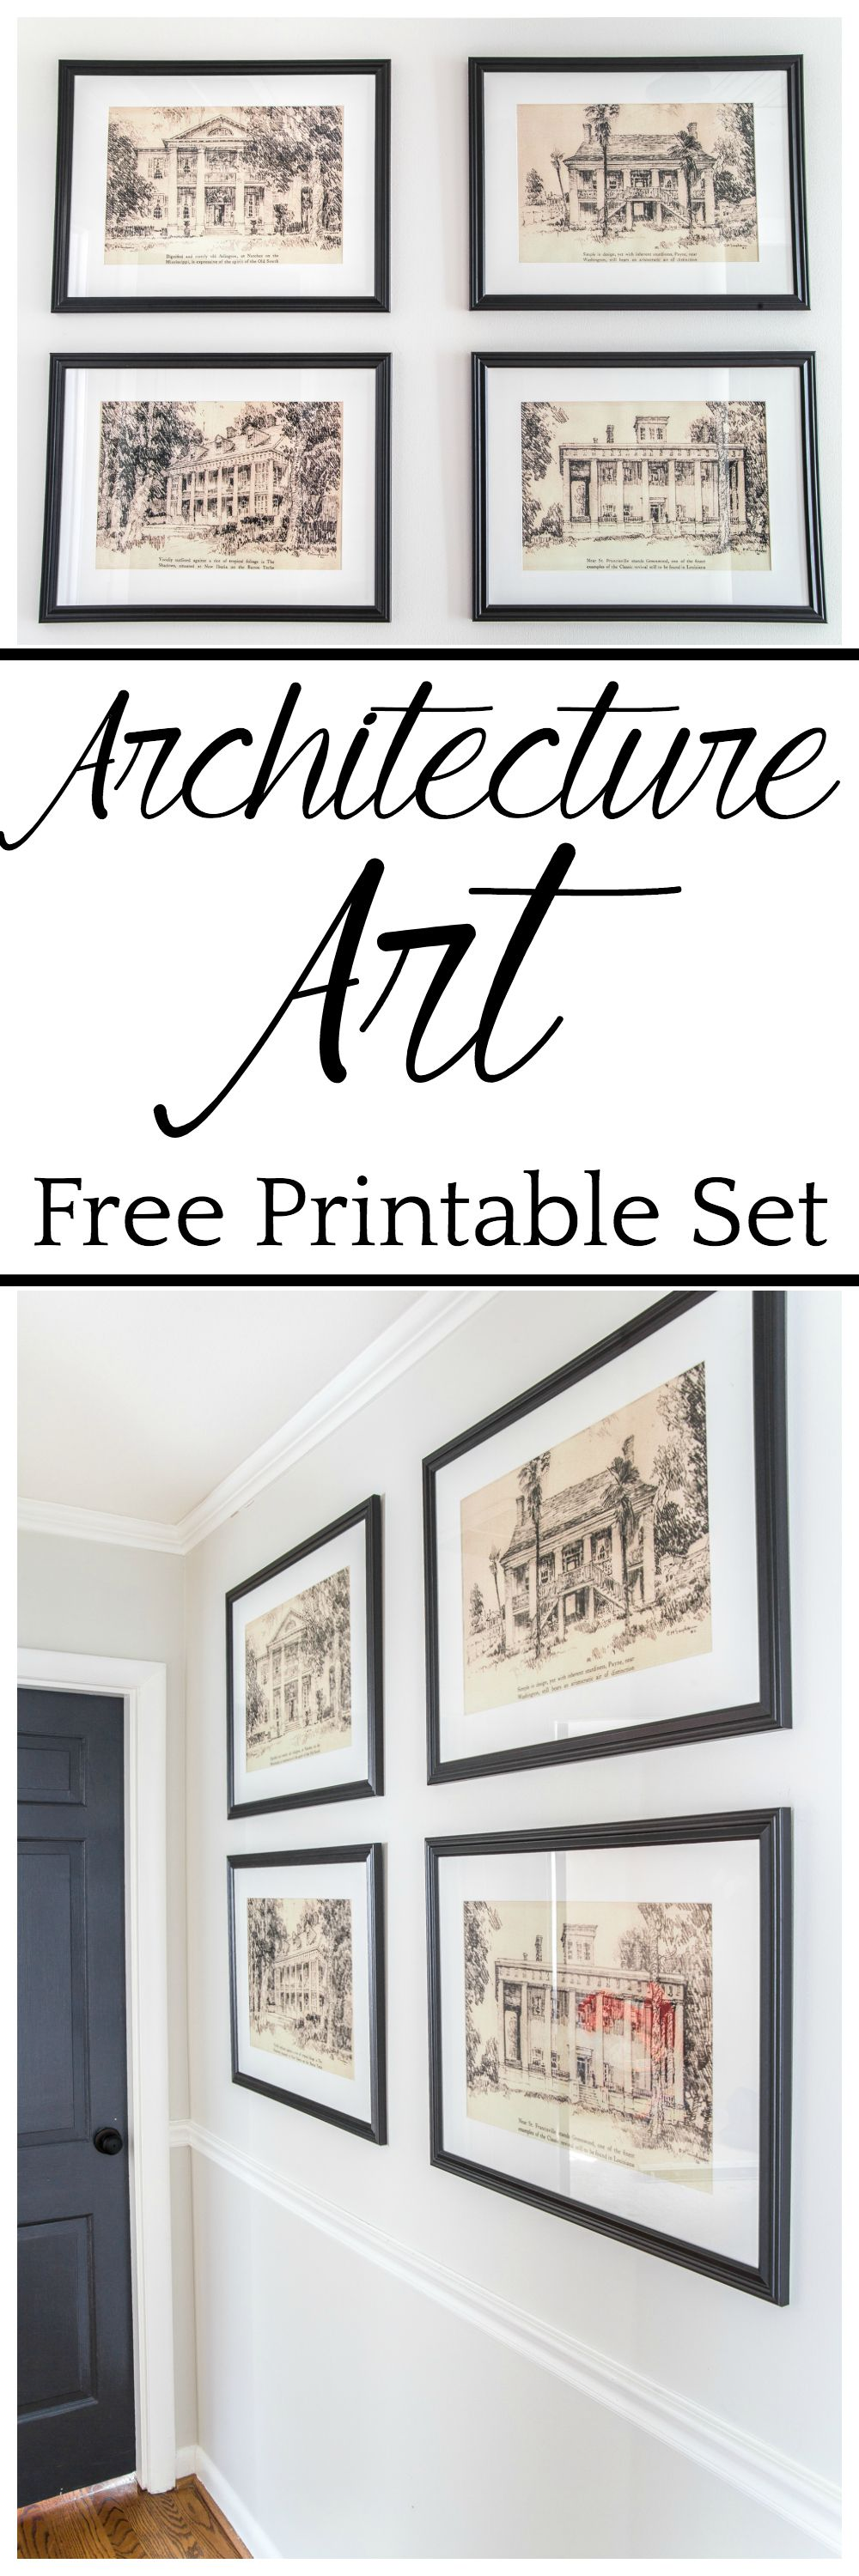 Architectural Printable Art